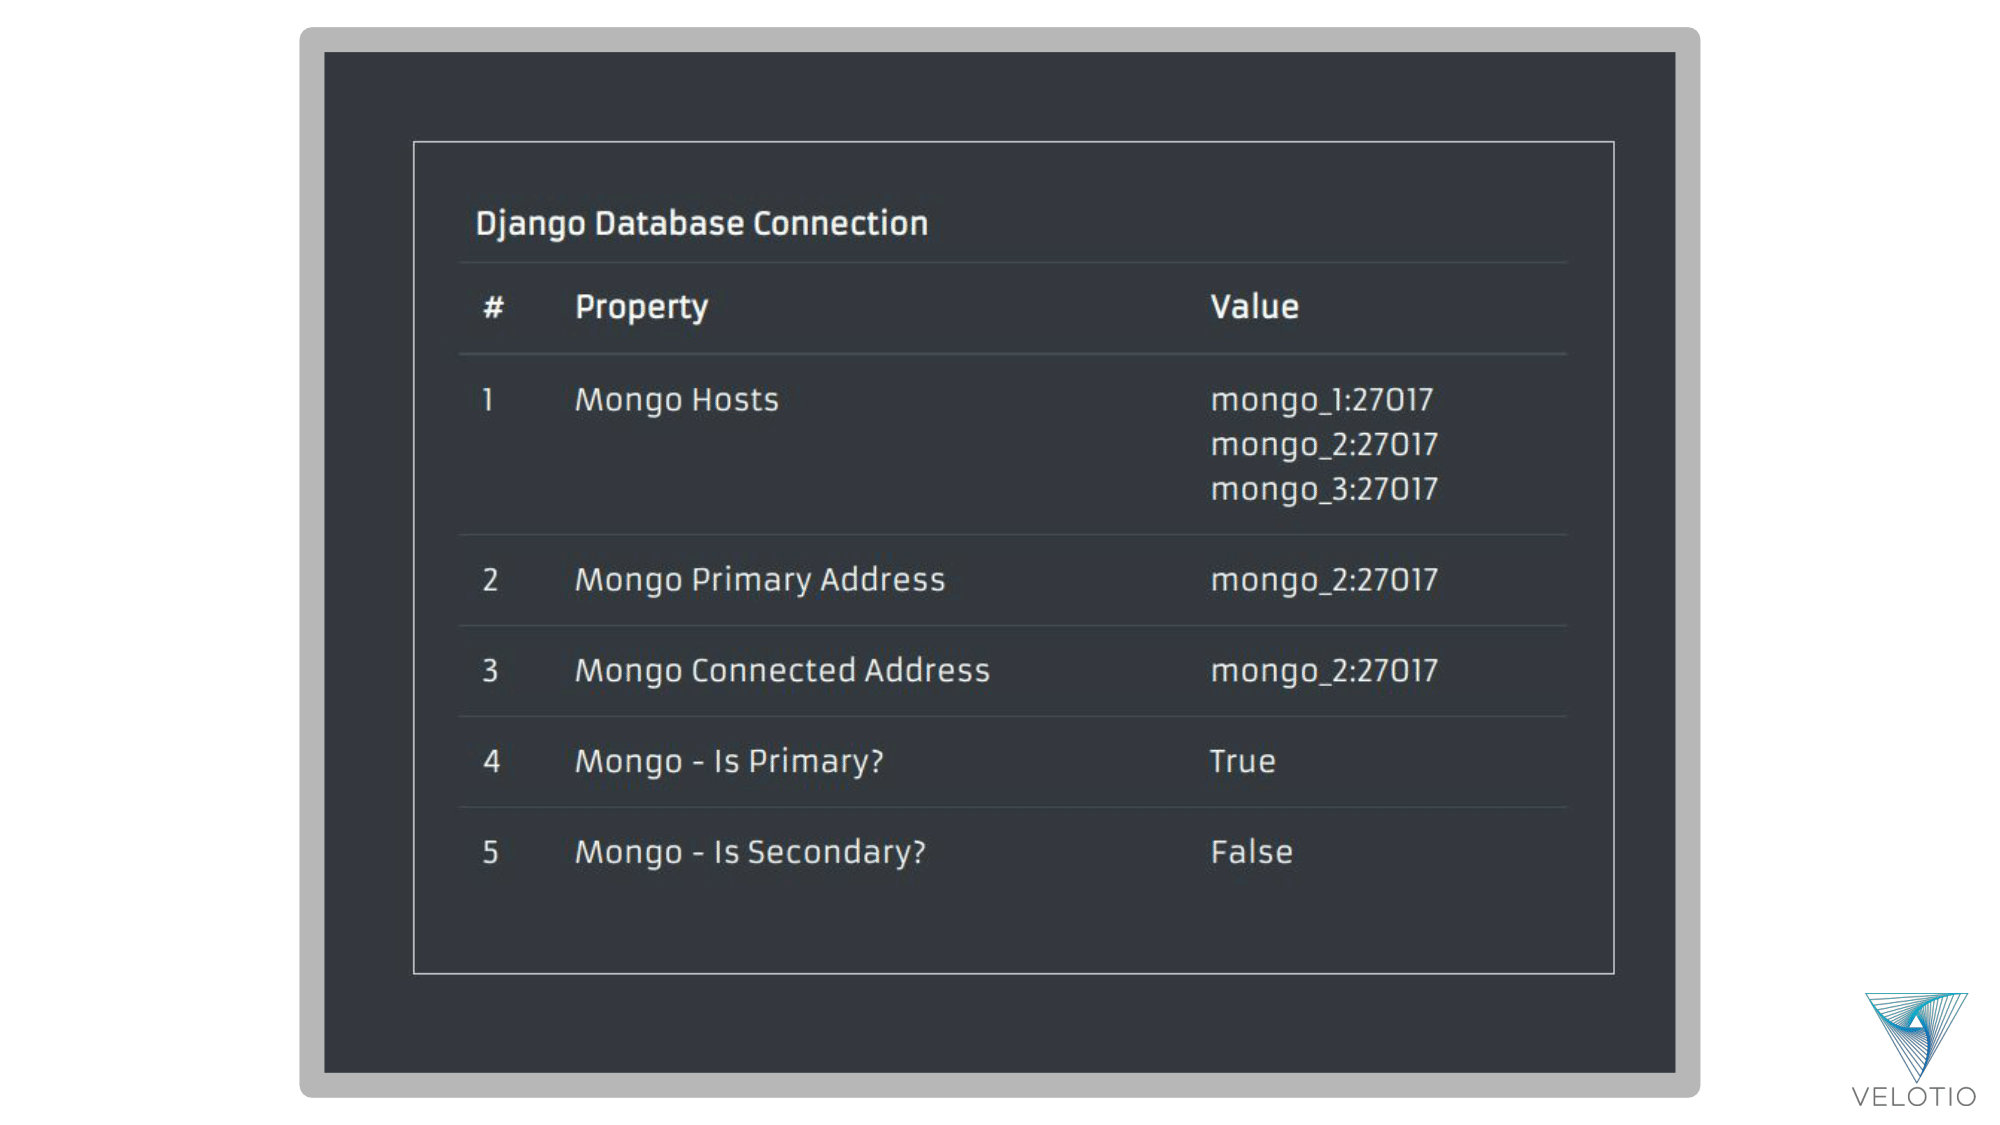 Django Web Application renders the MongoDB connection status